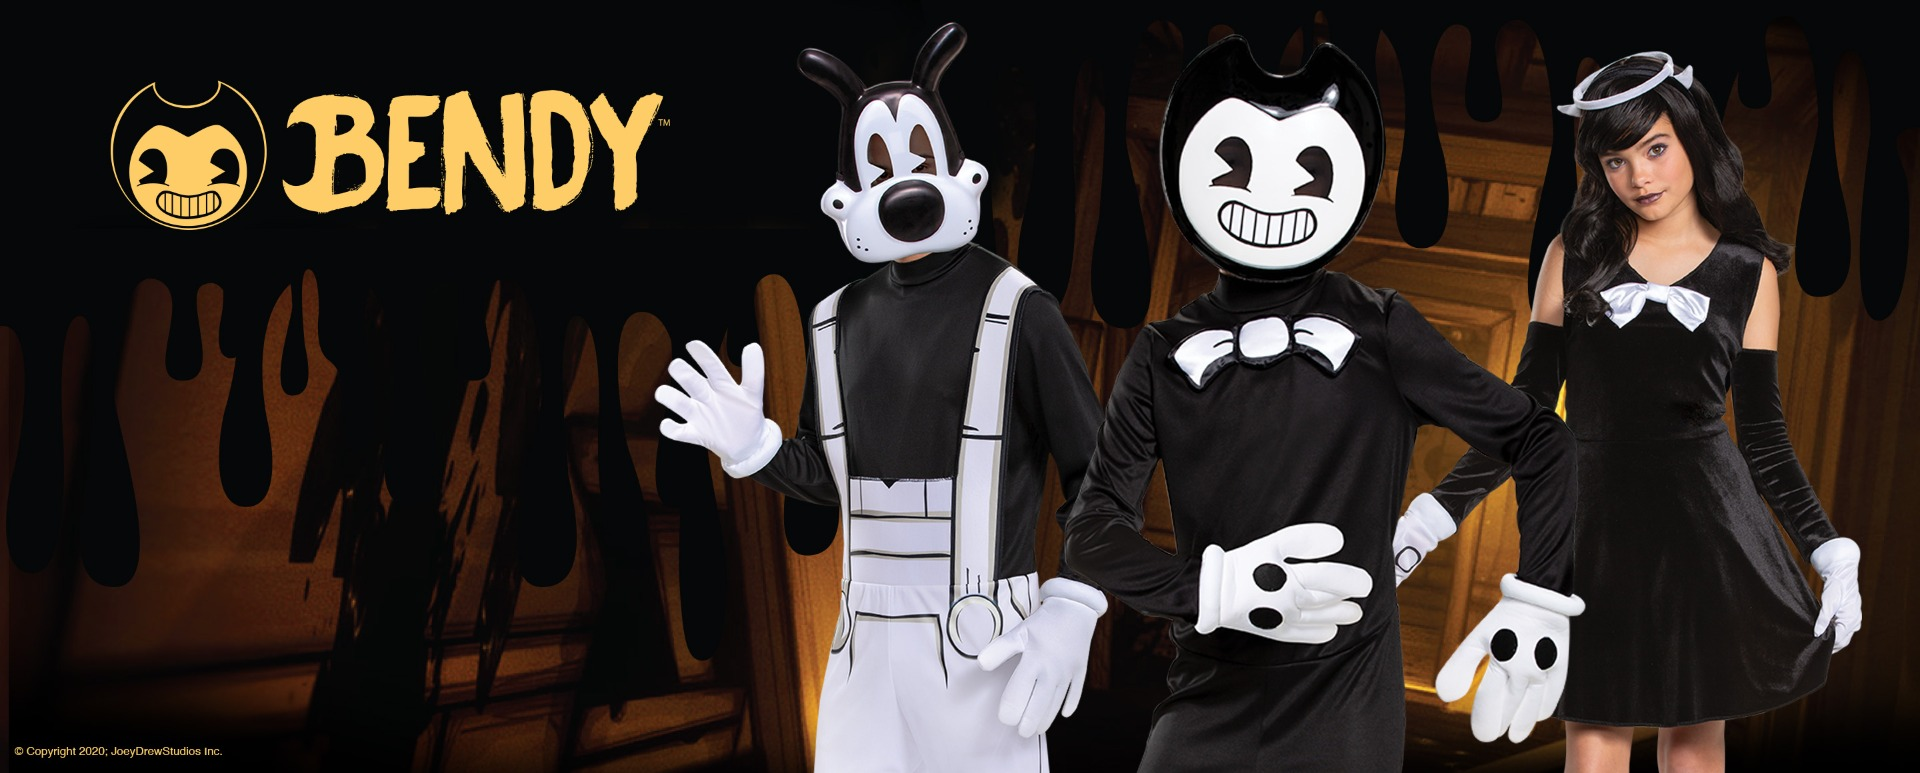 Bendy and the Ink Machine costumes